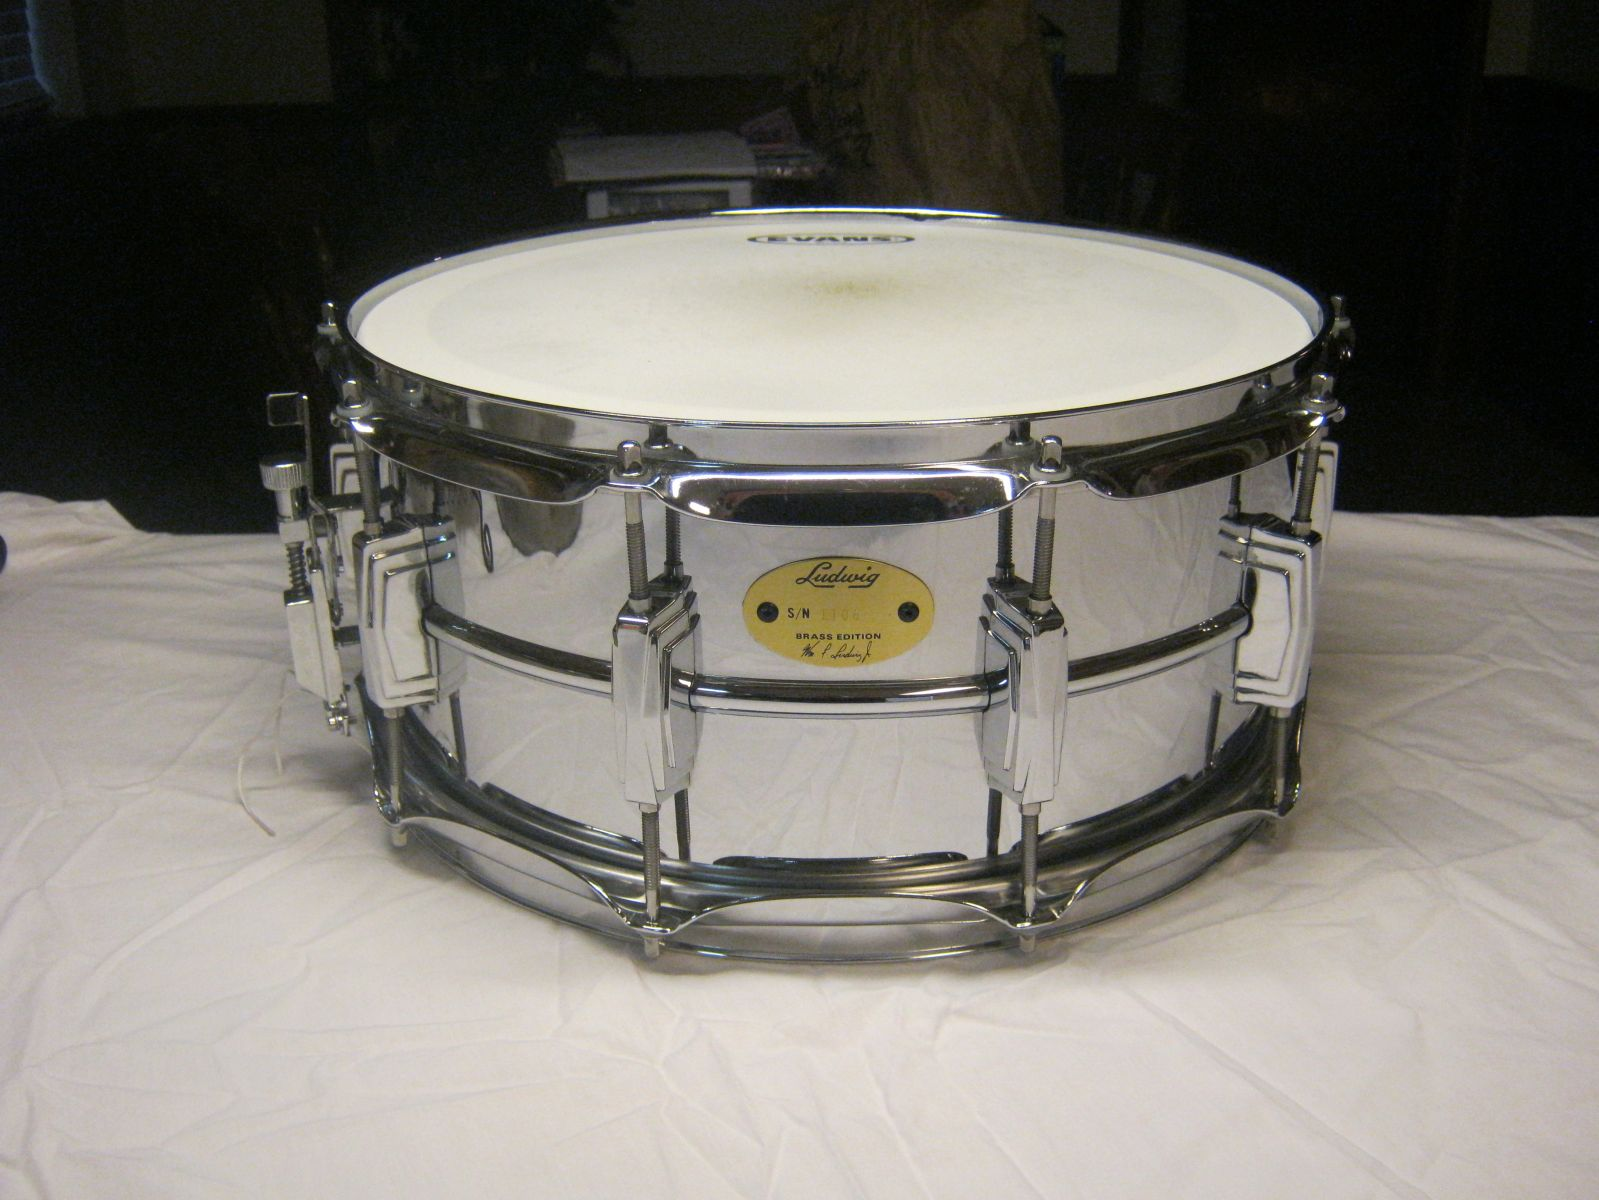 2005 Ludwig Chrome over Brass (COB) reissue 6.5 x 14